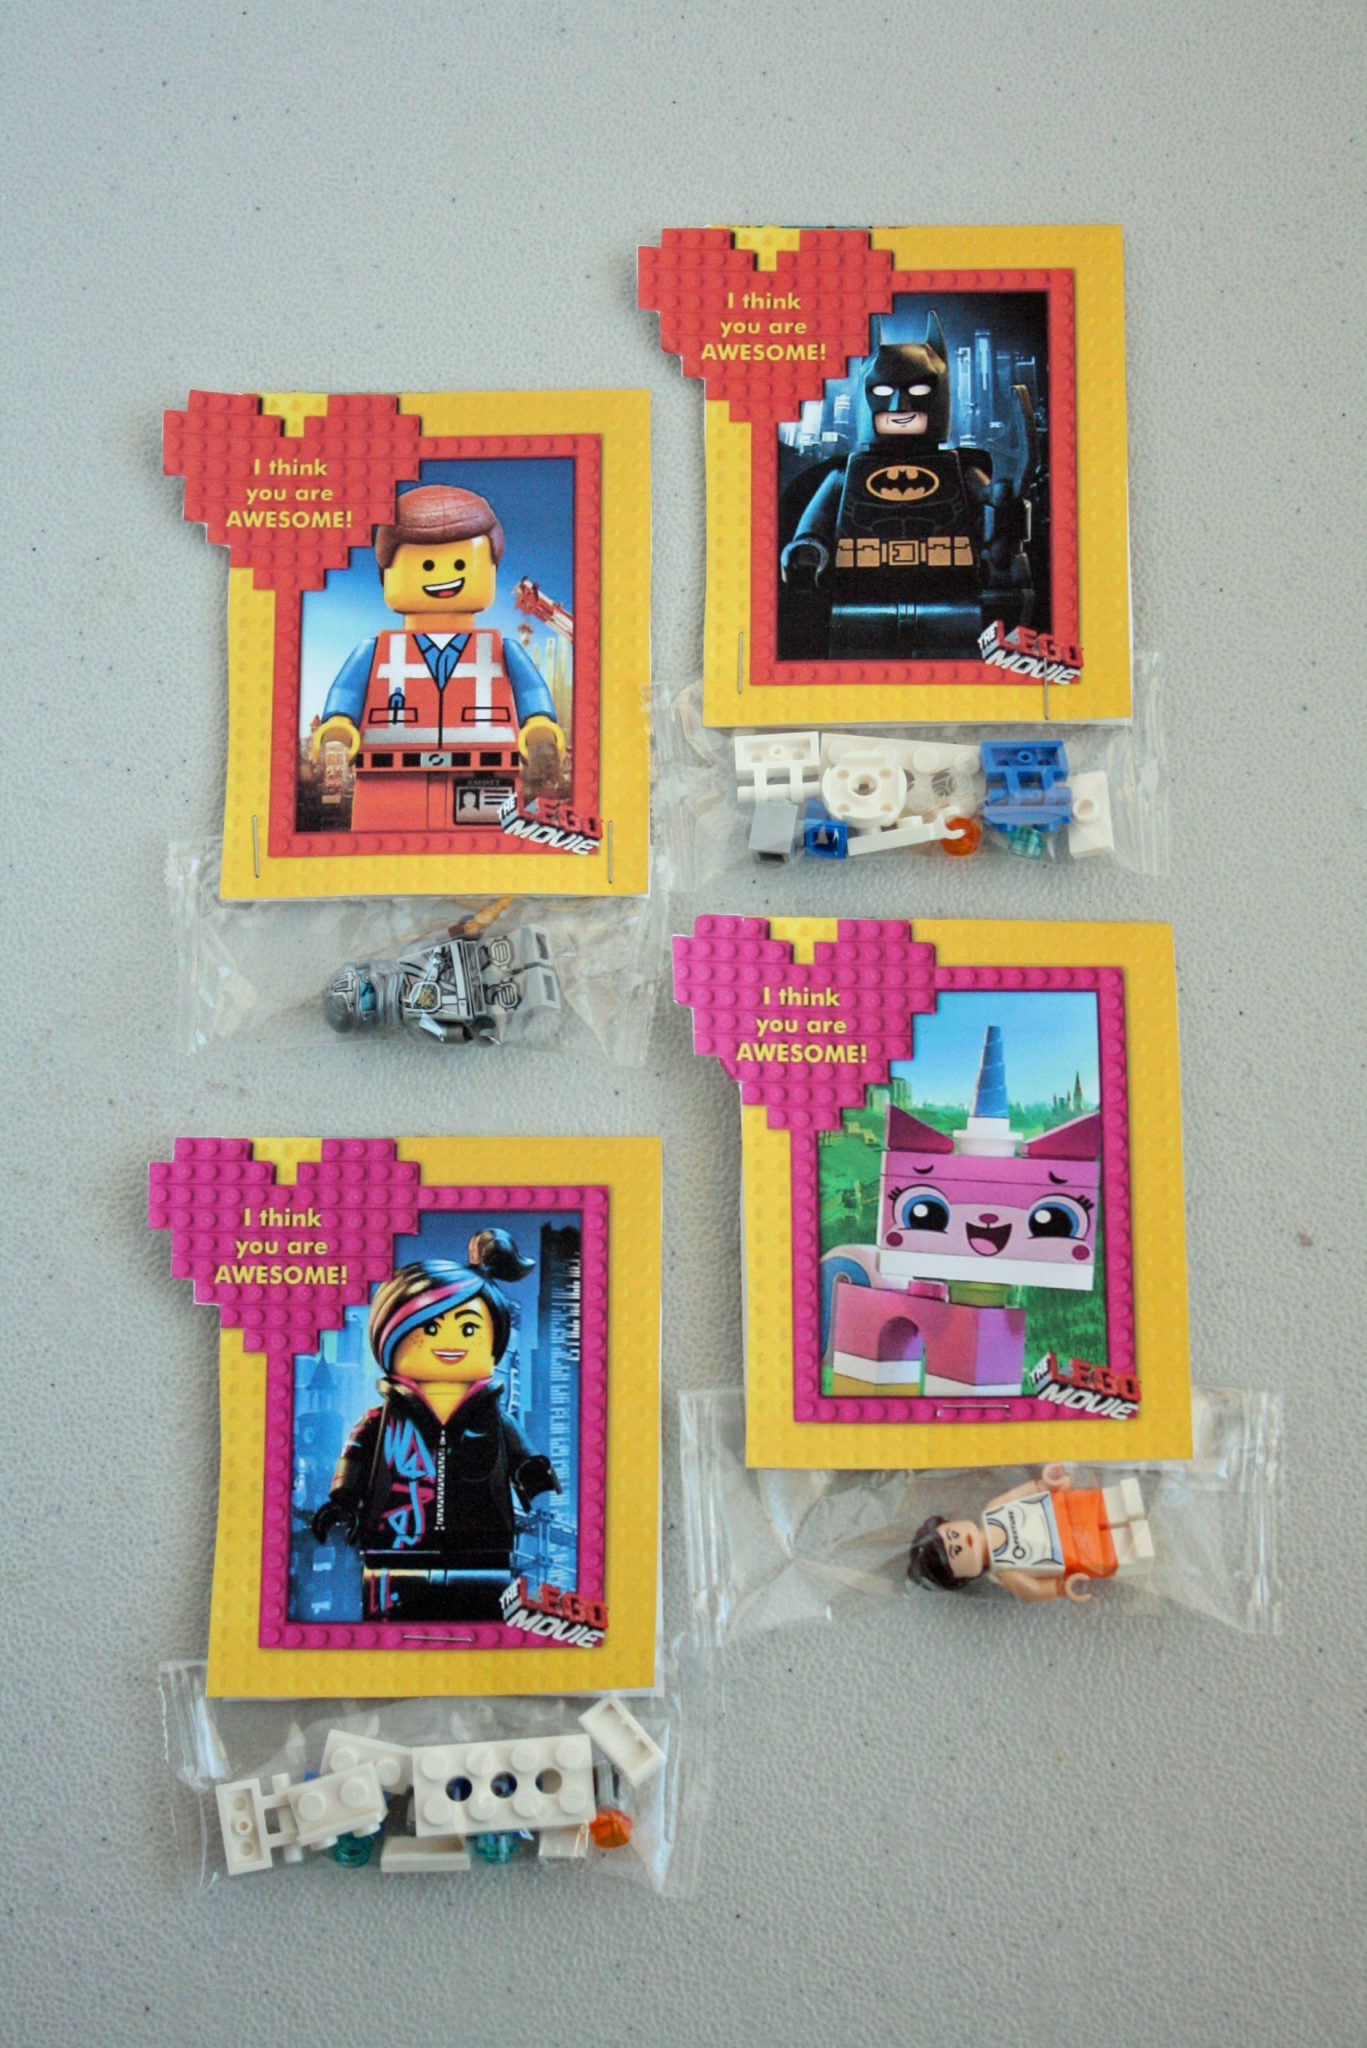 These awesome LEGO movie valentines cards are perfect for your children to pass out to friends in their classroom. Add a creative DIY touch by attaching some LEGO bricks or other Lego favors like minifigures. Lego Printable Valentines | LEGO Valentines Cards